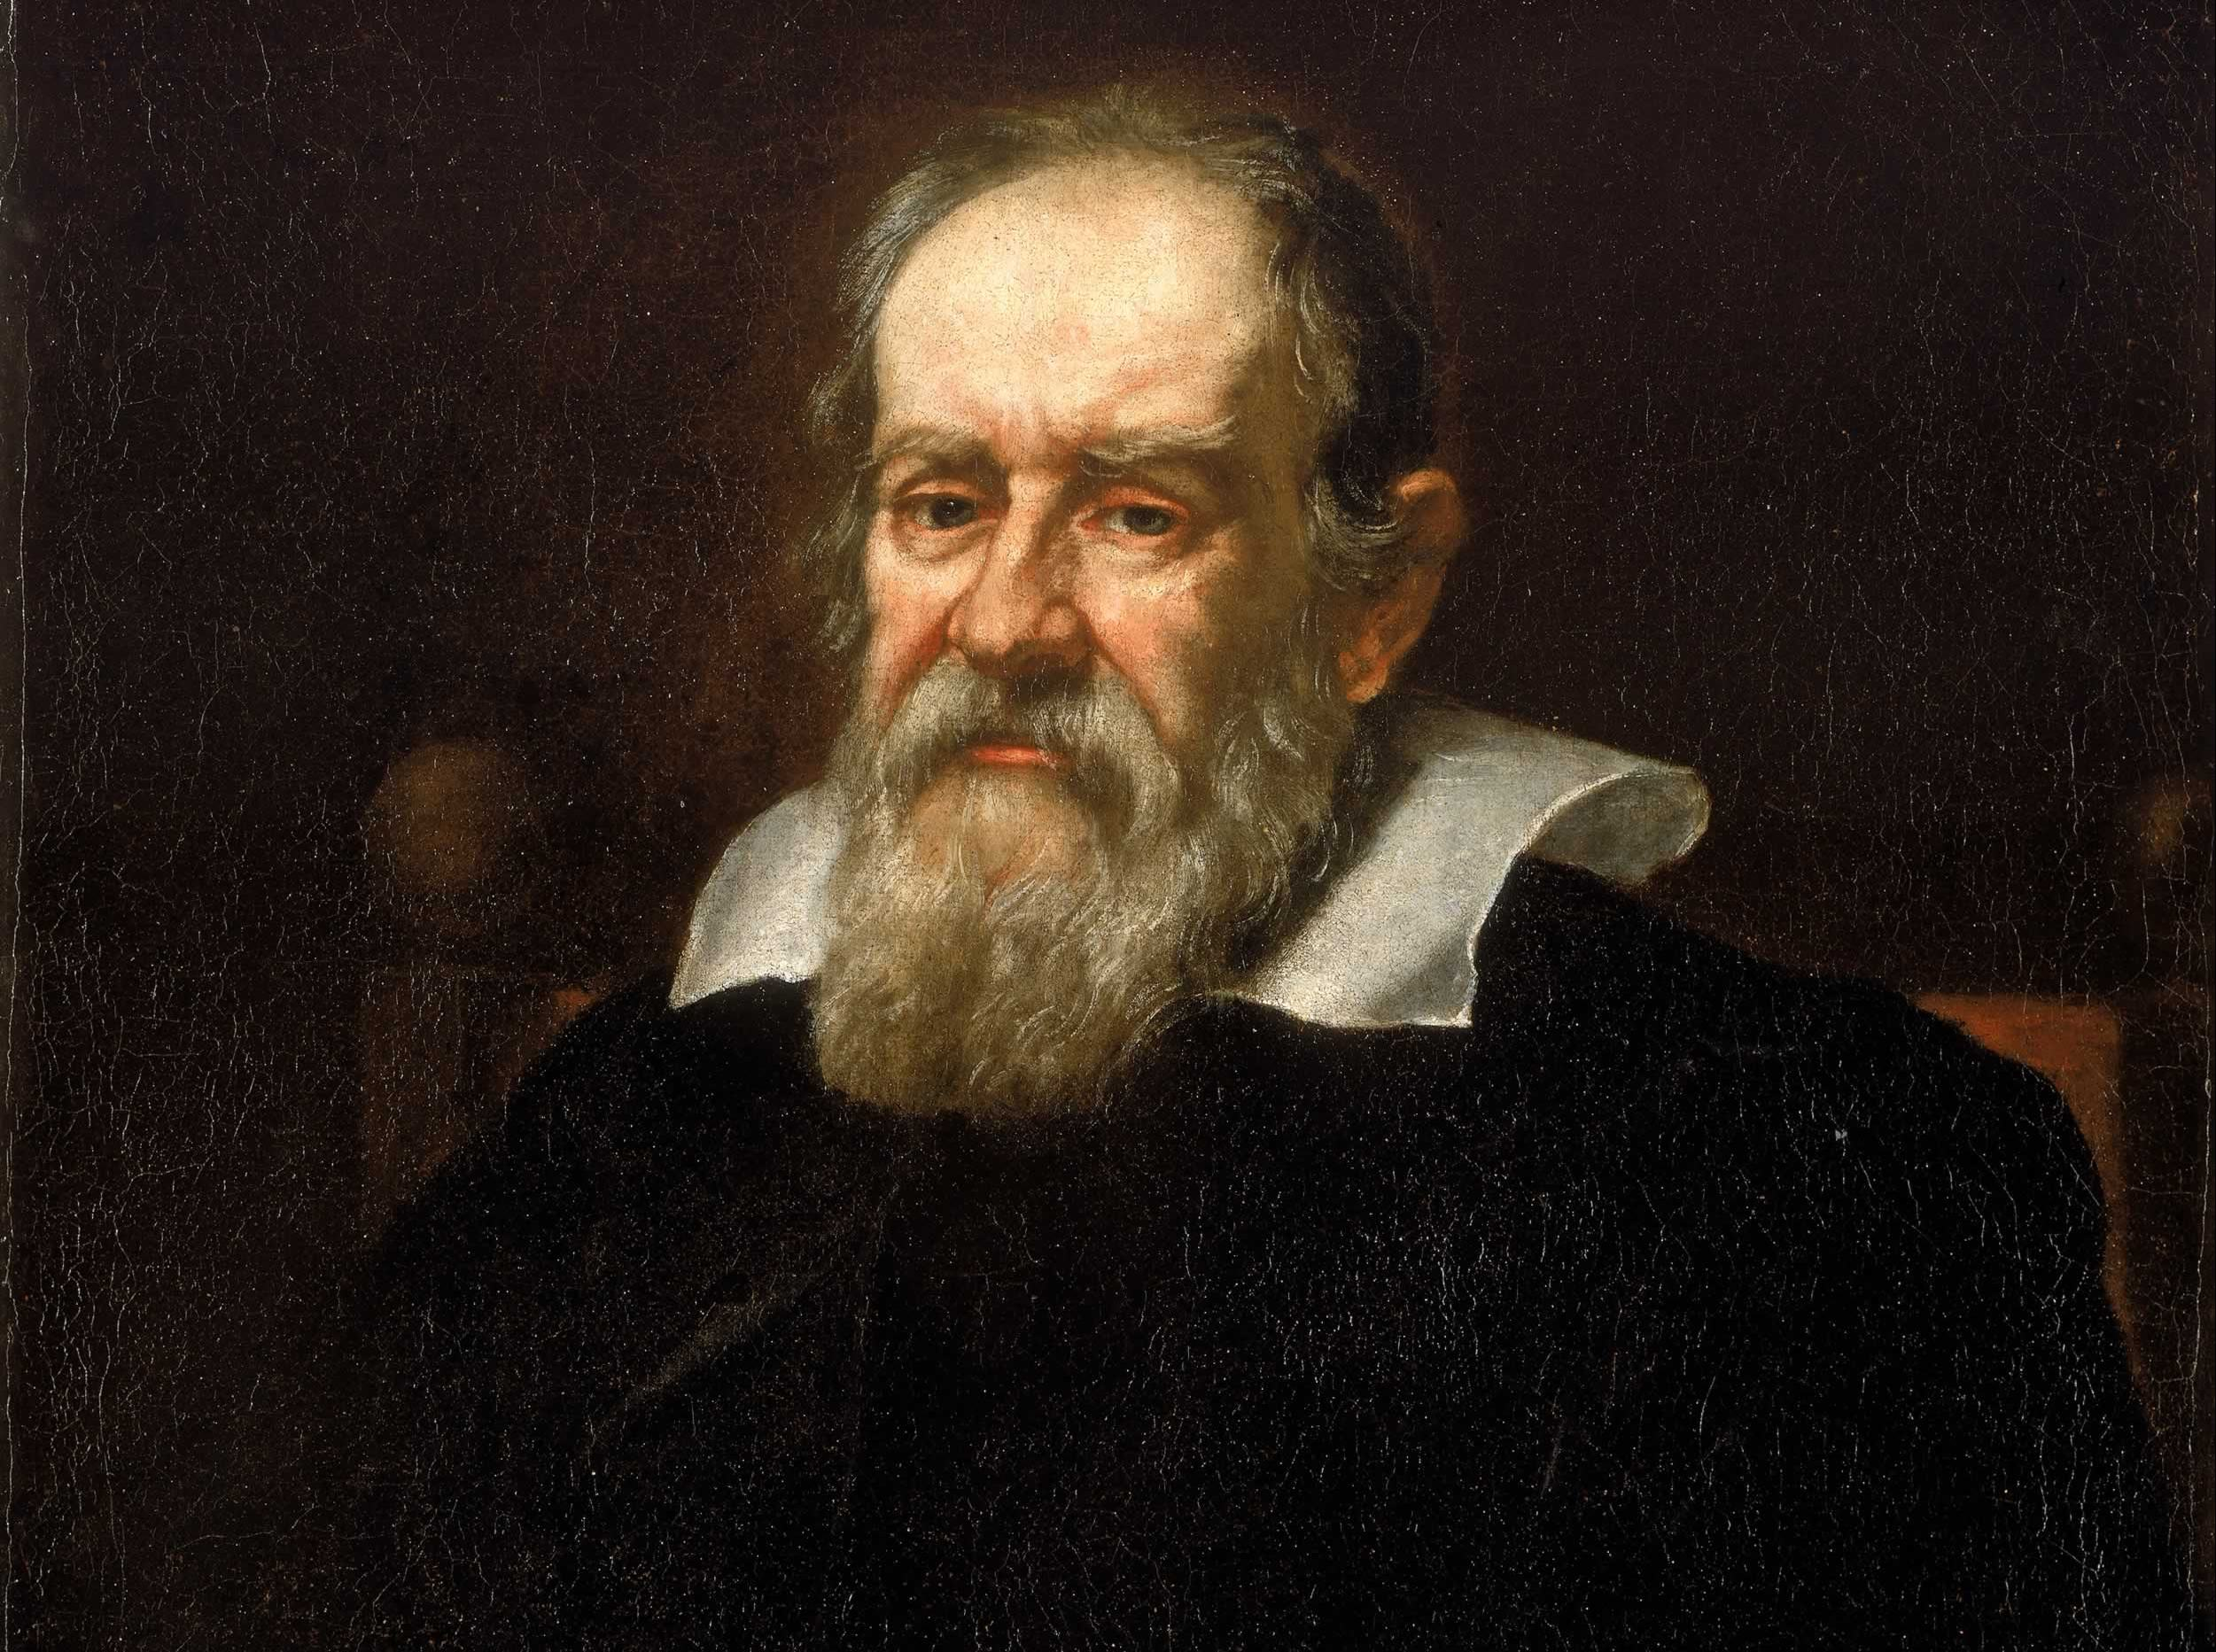 Who was galileo galilei? universe today